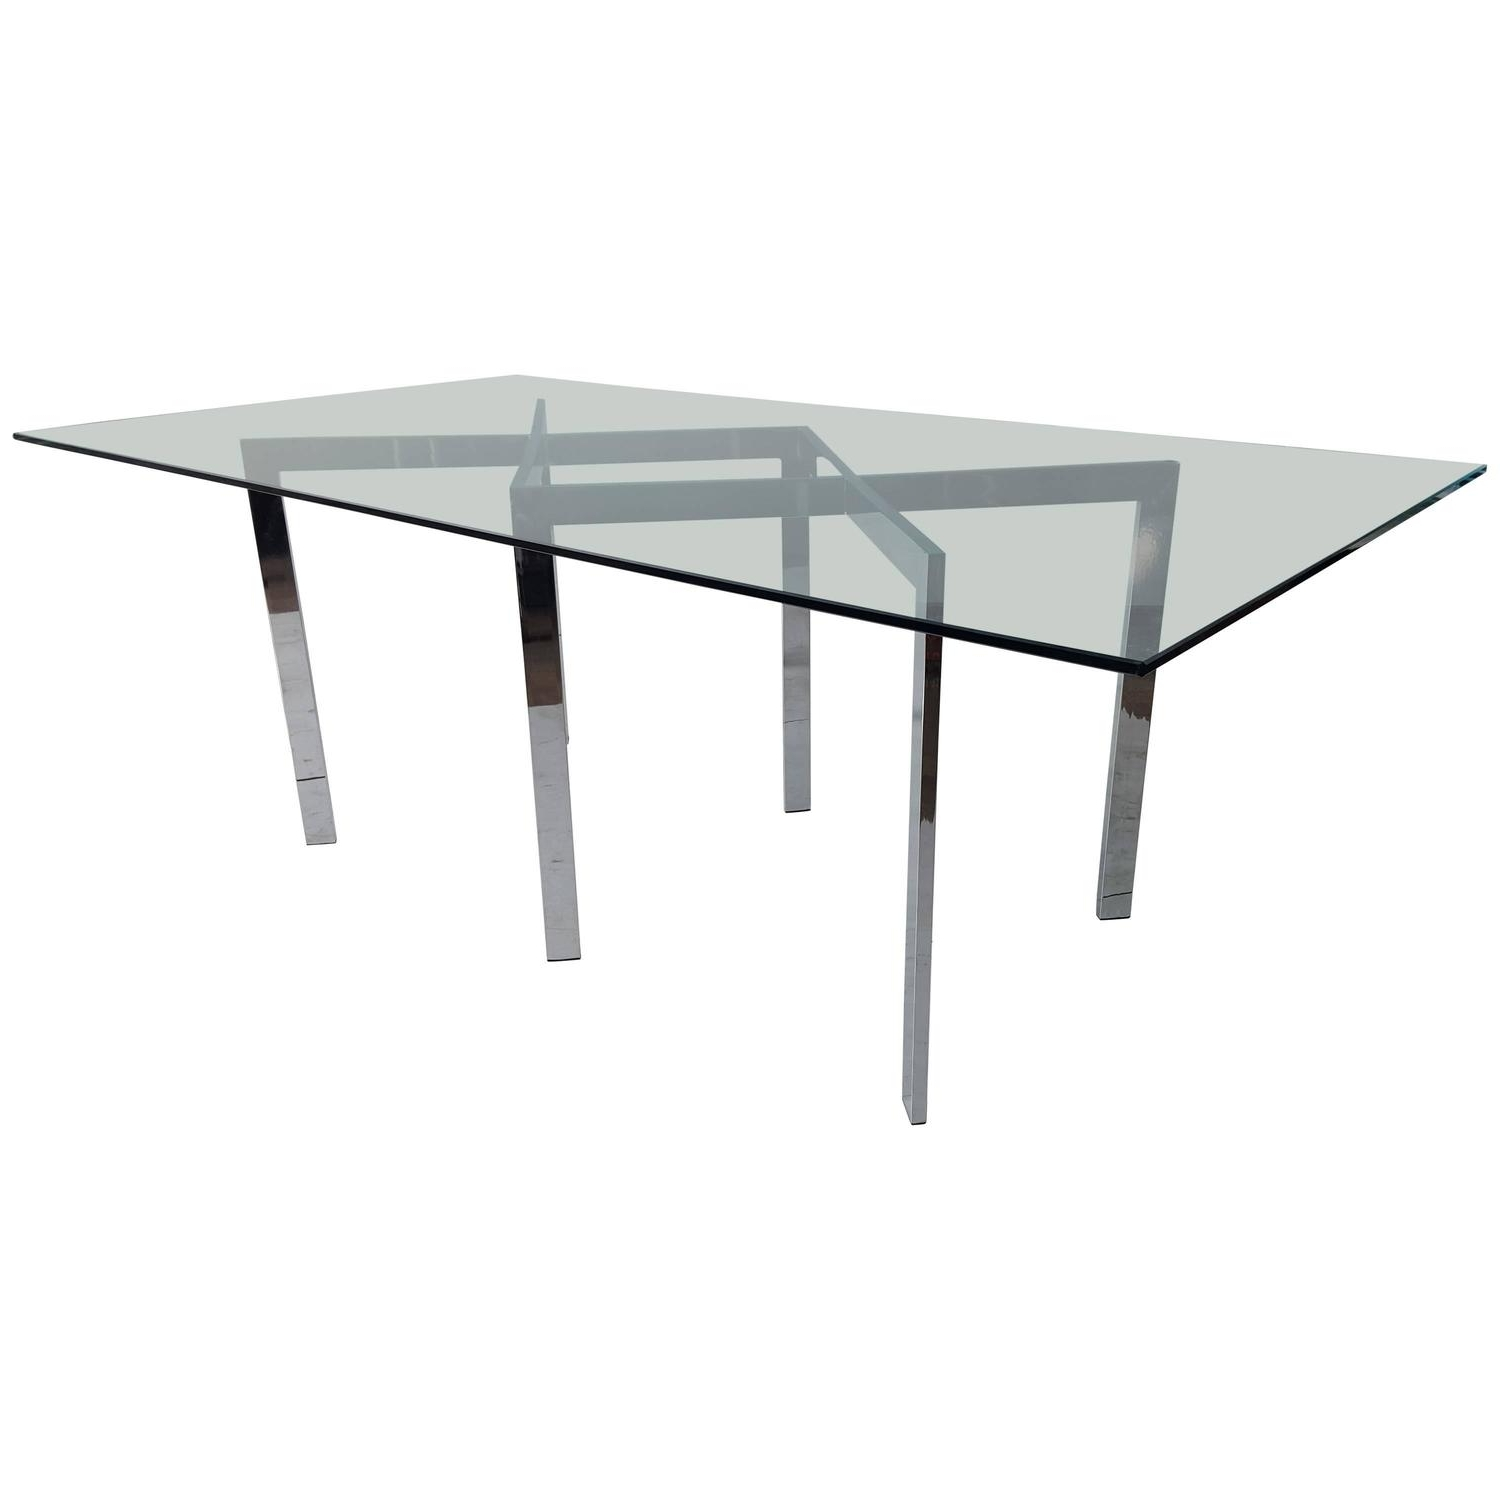 Milo Baughman, Thayer Coggin Chrome X Base And Glass Dining Table Inside Well Liked Chrome Glass Dining Tables (Gallery 11 of 25)